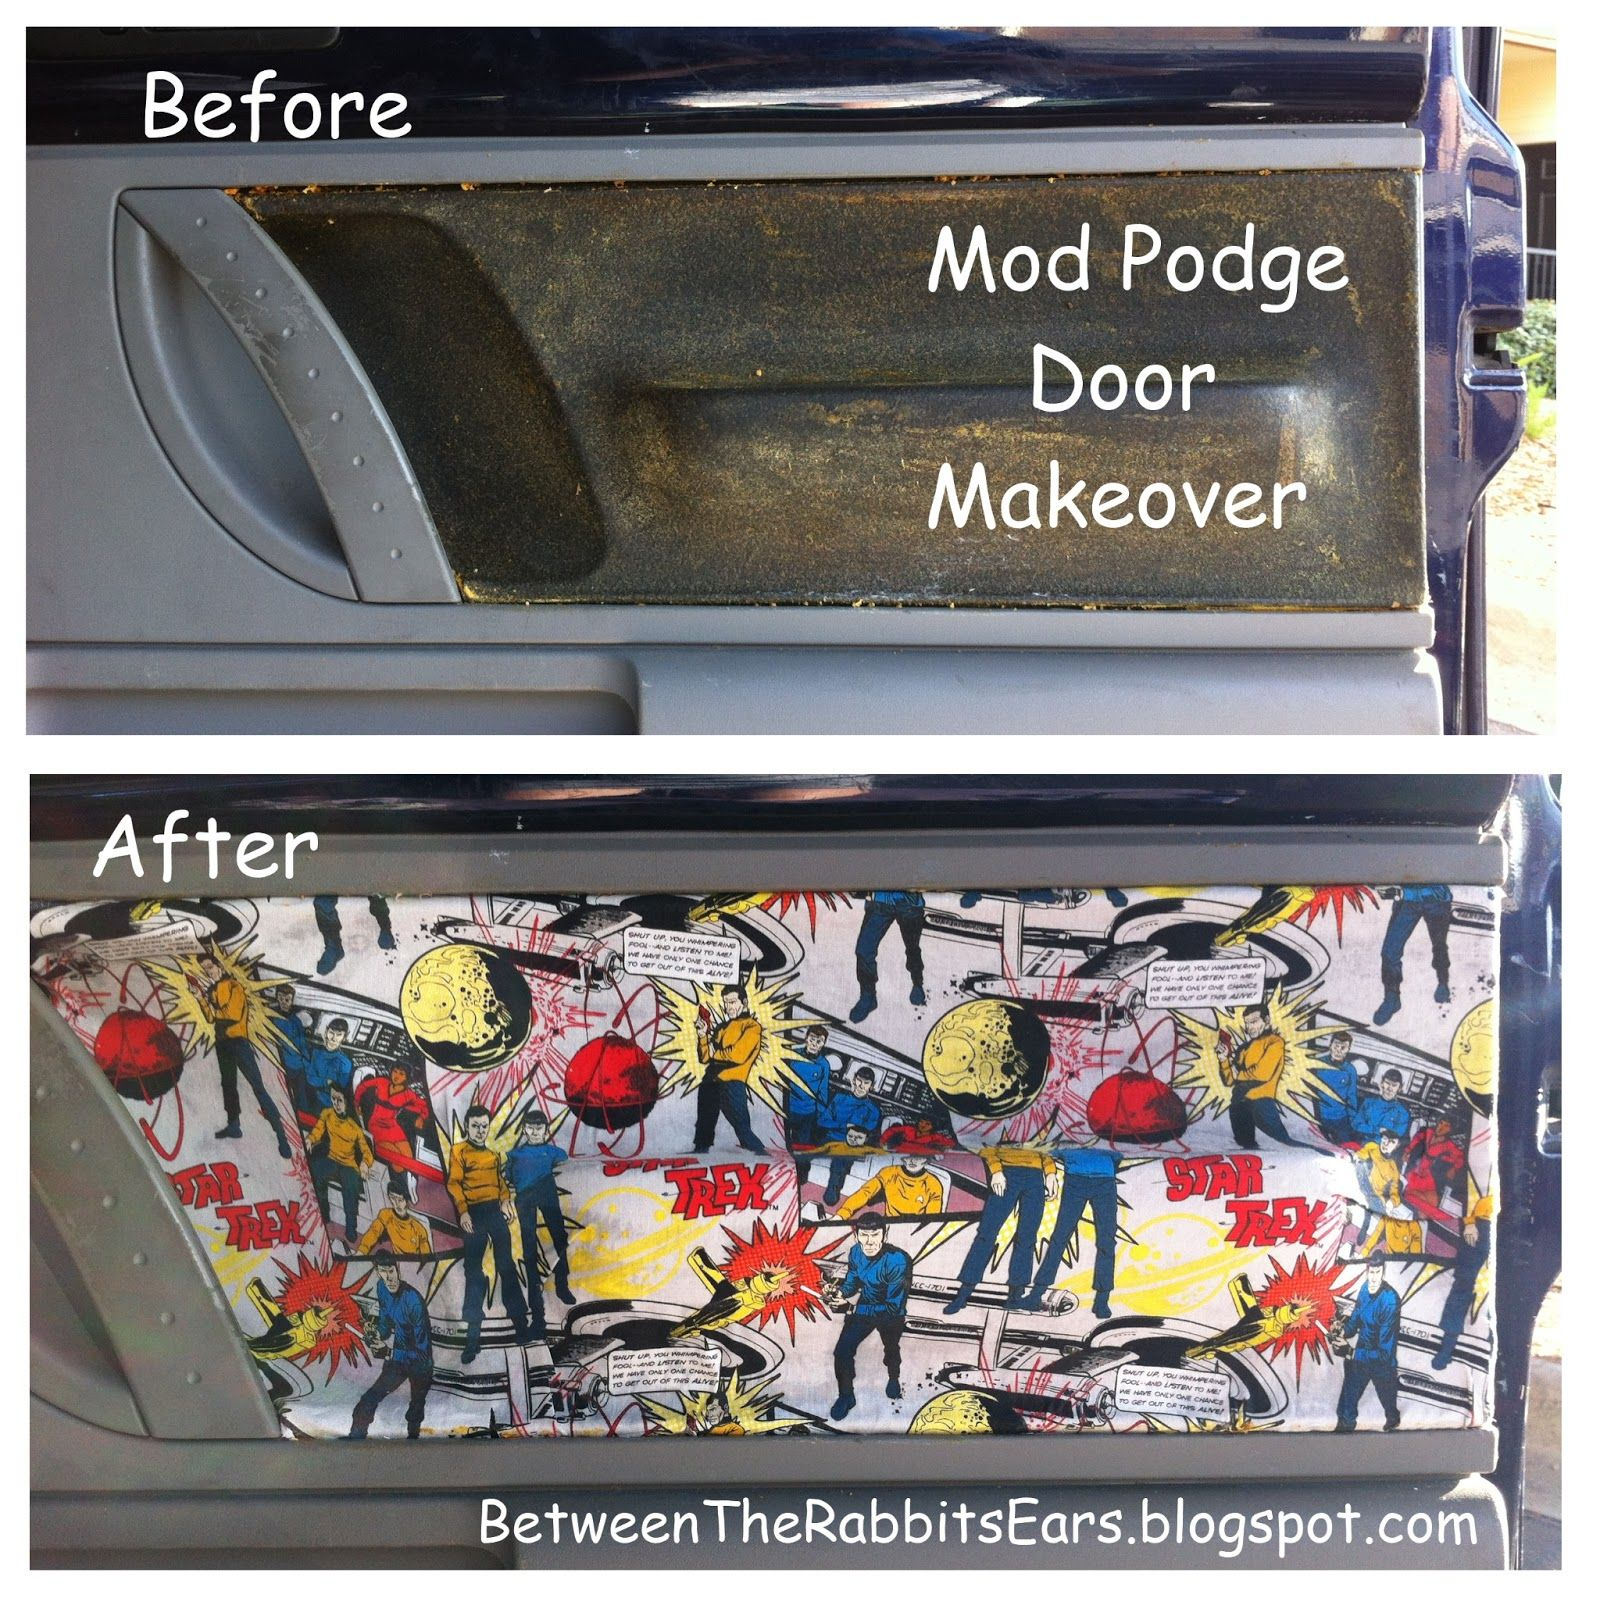 Car interior homemade cleaner - Between The Rabbit S Ears Diy Interior Car Door Makeover With Mod Podge